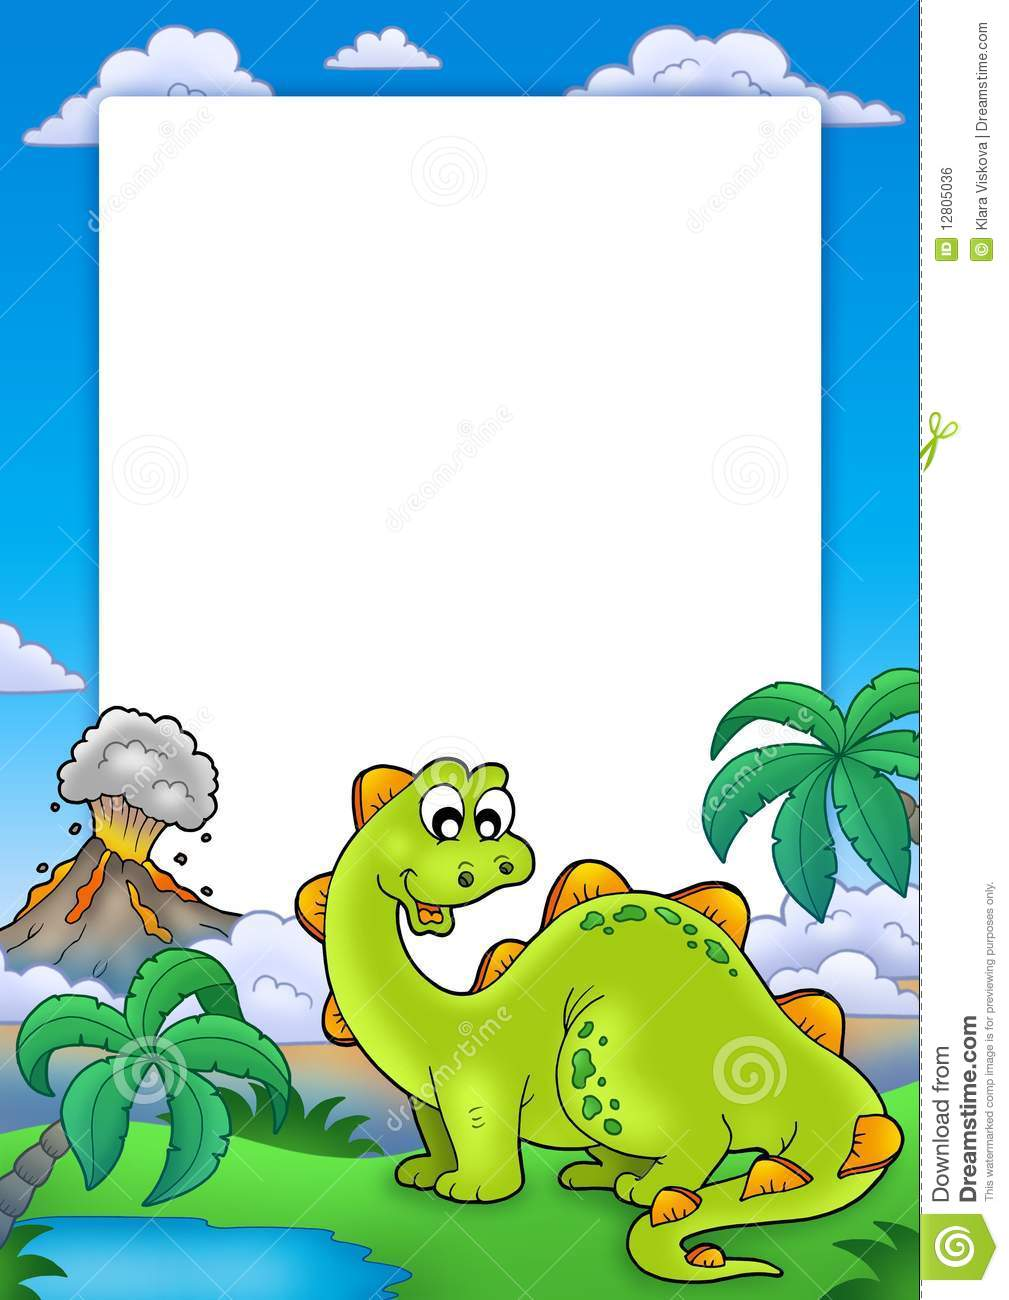 frame with cute dinosaur stock illustration illustration Clip Art Border for Word Page Borders for Microsoft Word